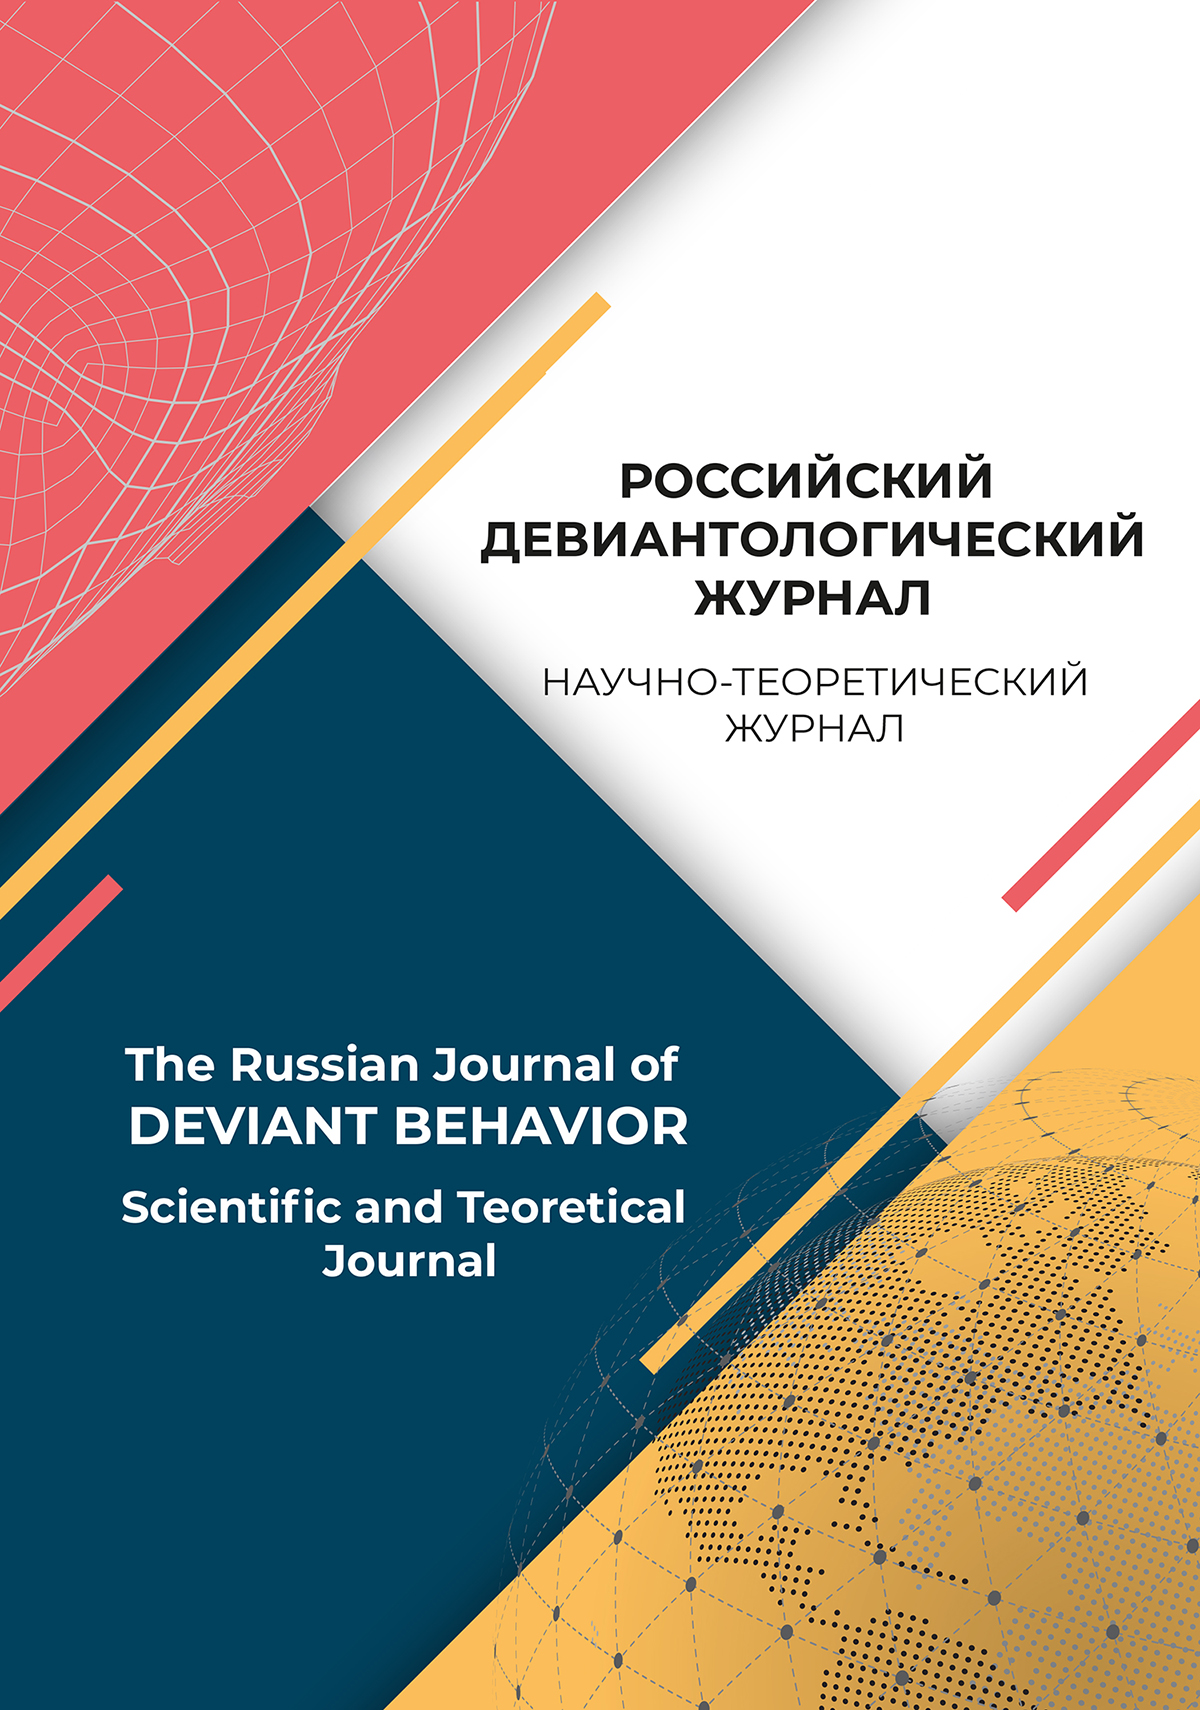 The Russian Journal of Deviant Behavior